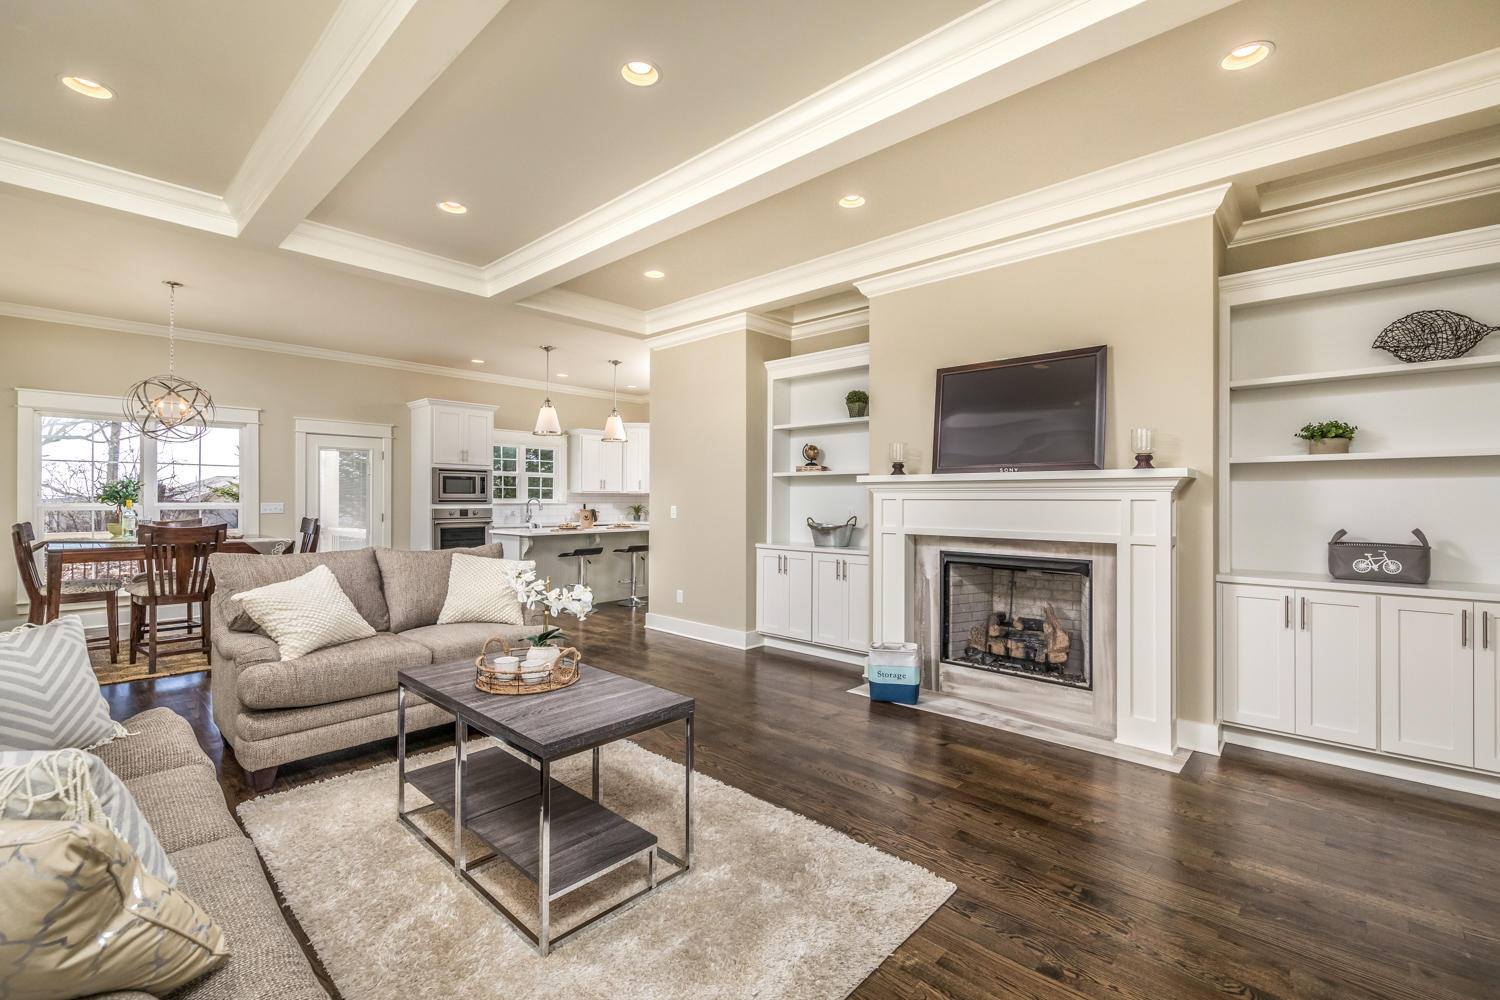 living room - Touch up paint, clear shelving and mantel, allow natural light to enter the room